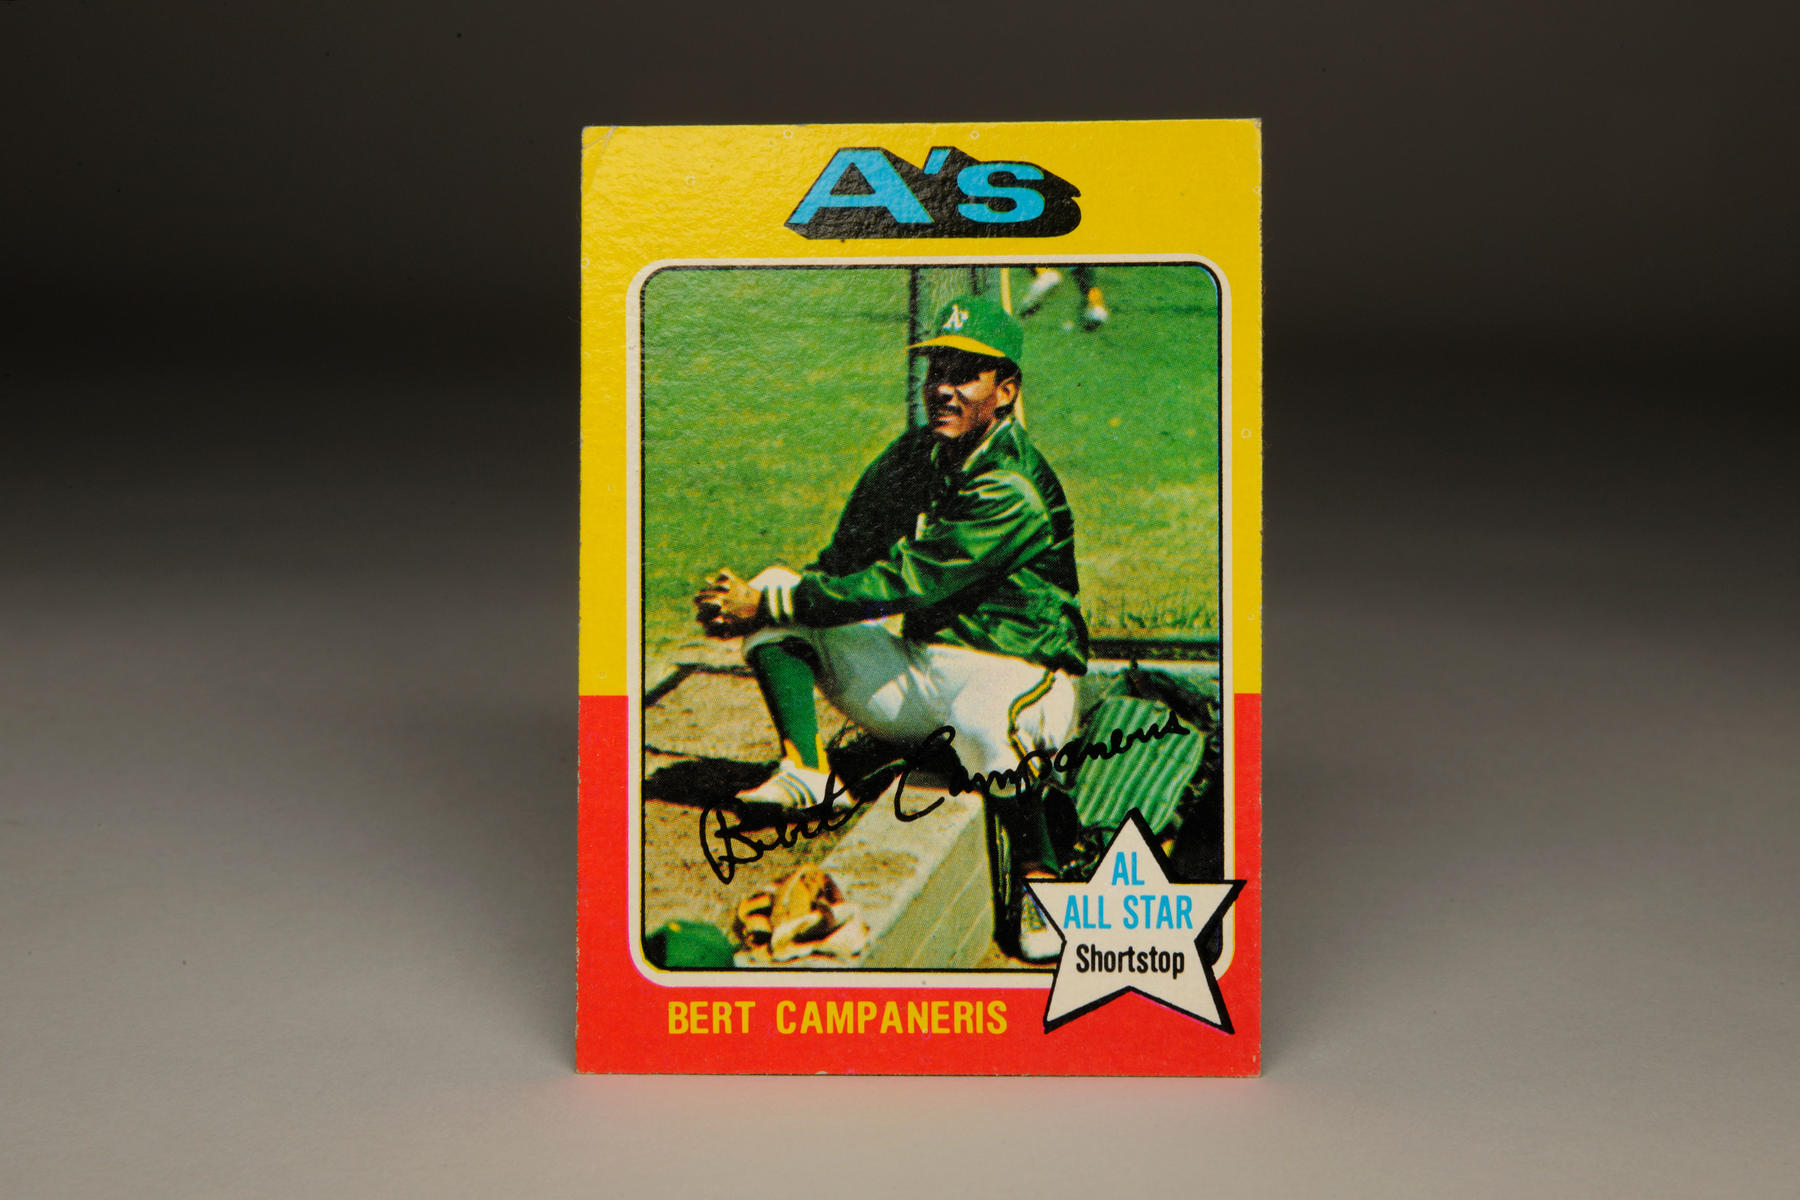 1975 Bert Campaneris Topps card, shot by Doug McWilliams. (Milo Stewart Jr. / National Baseball Hall of Fame)